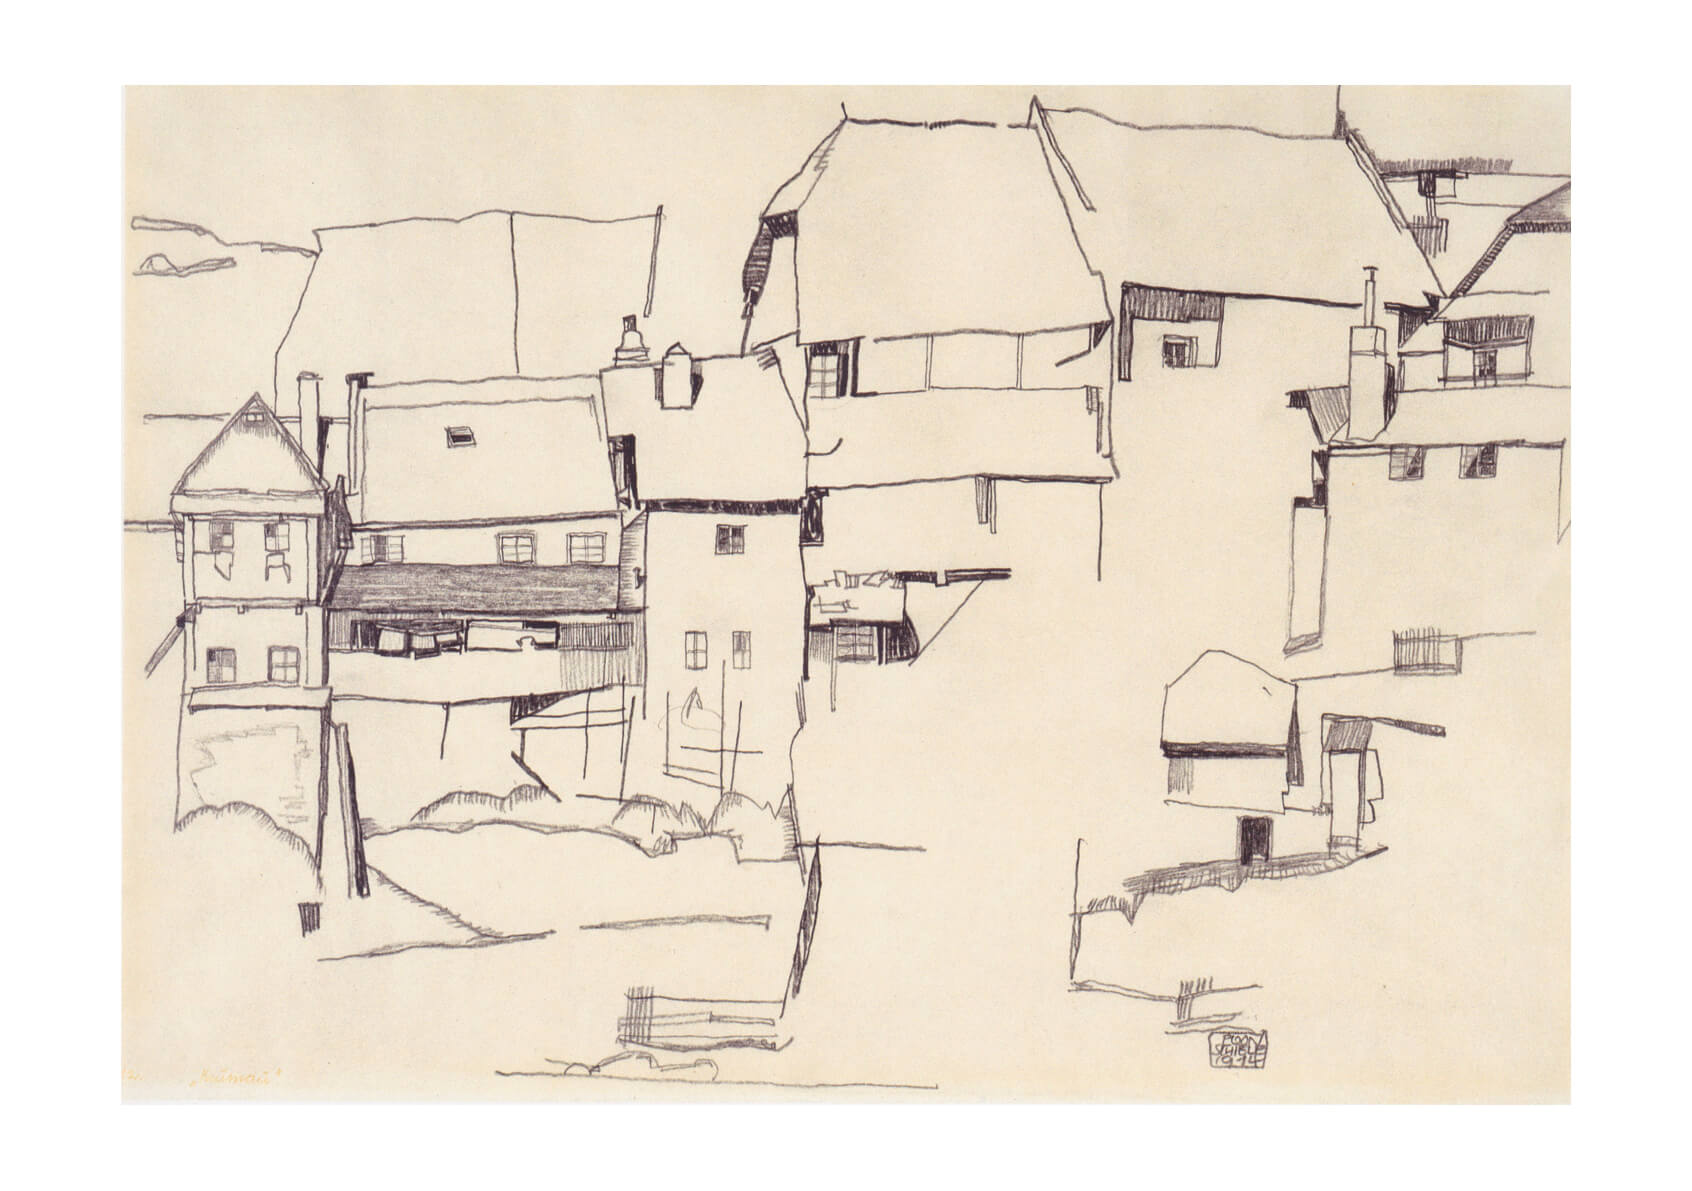 Egon Schiele - Sketch of Town